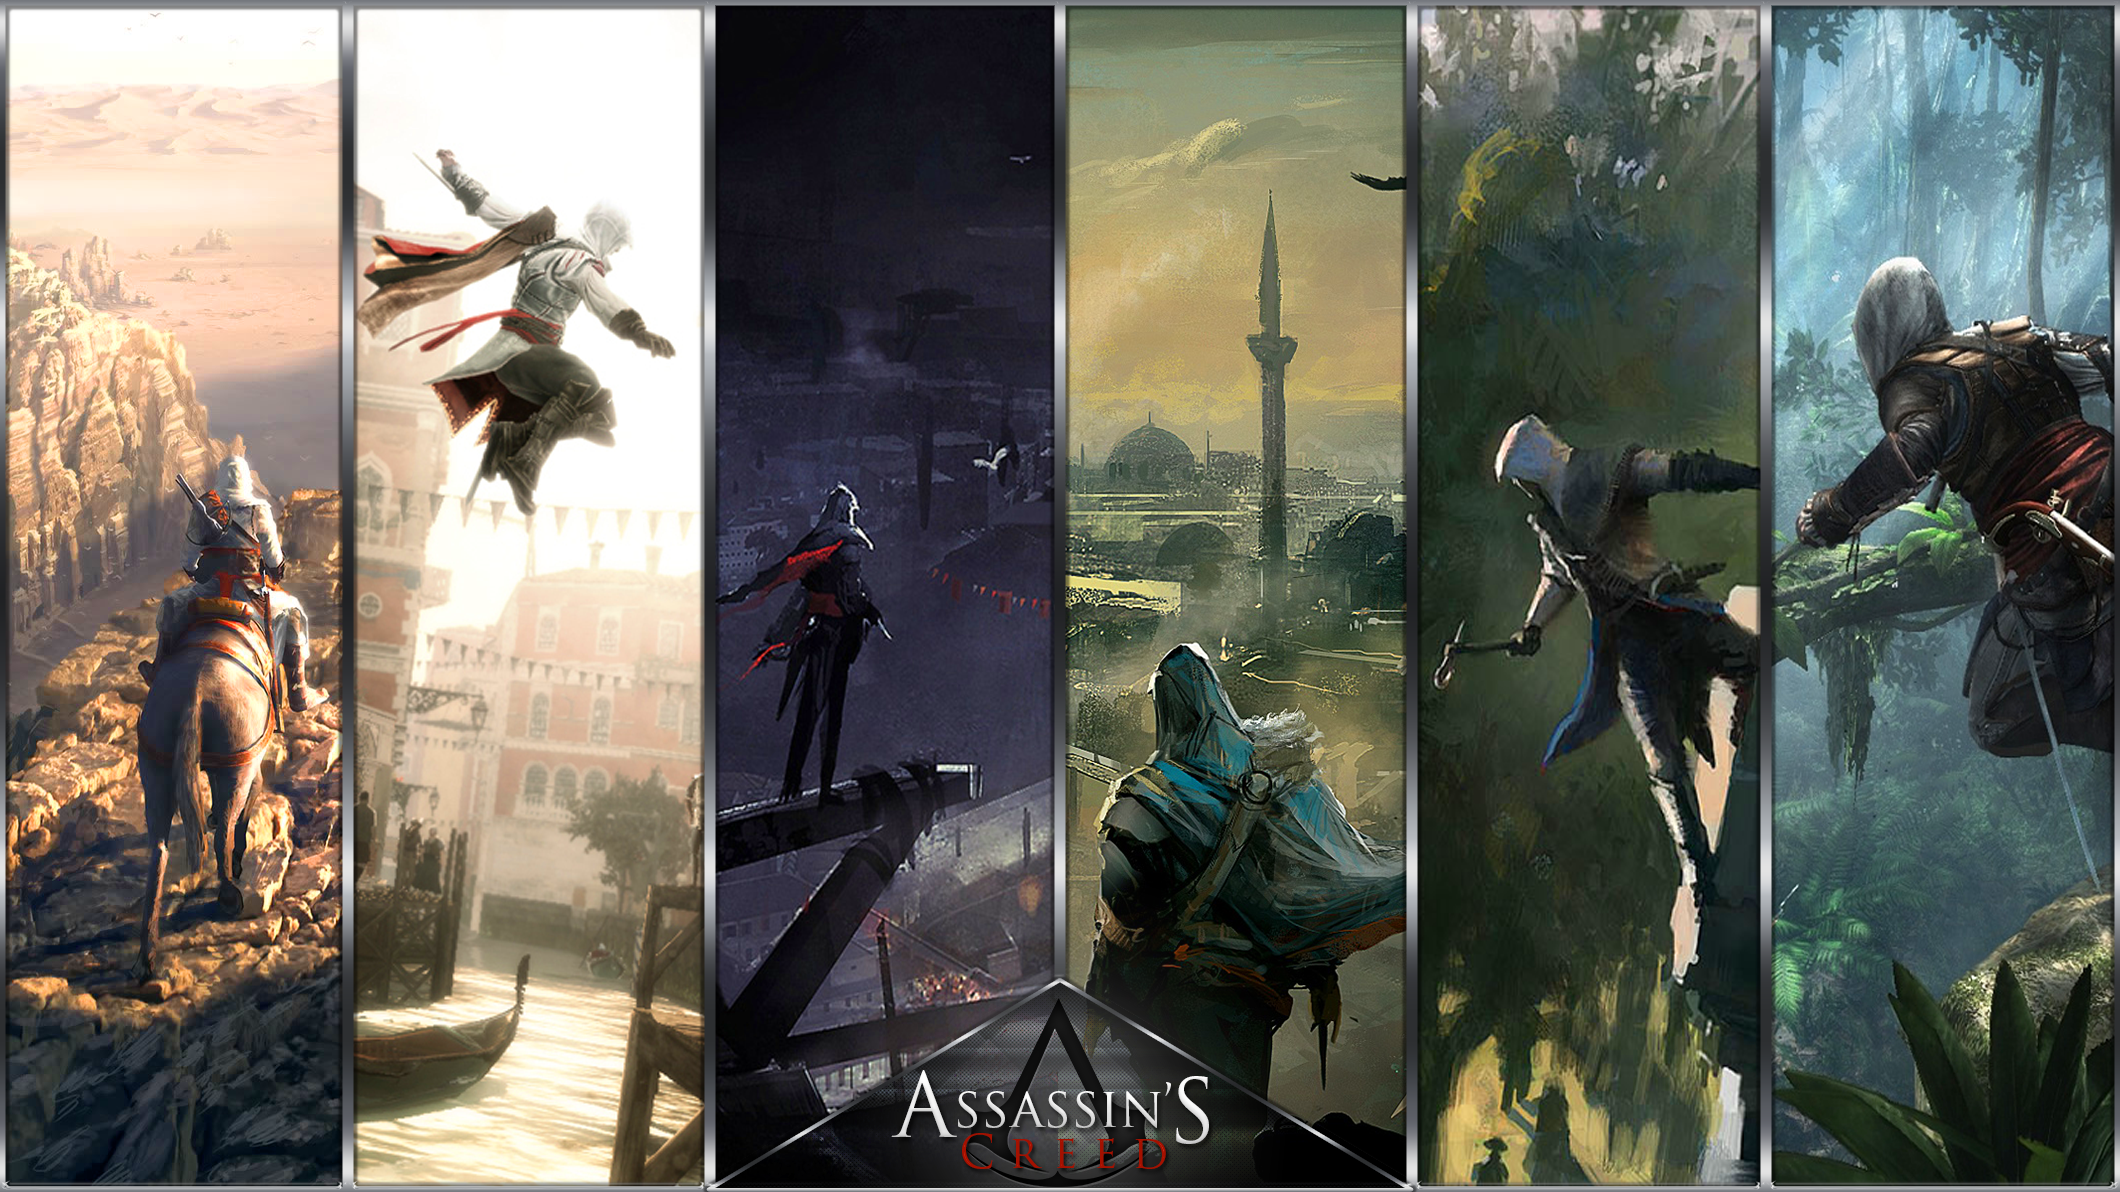 Free Download Assassin S Creed Wallpaper By Theeviln Watch Fan Art